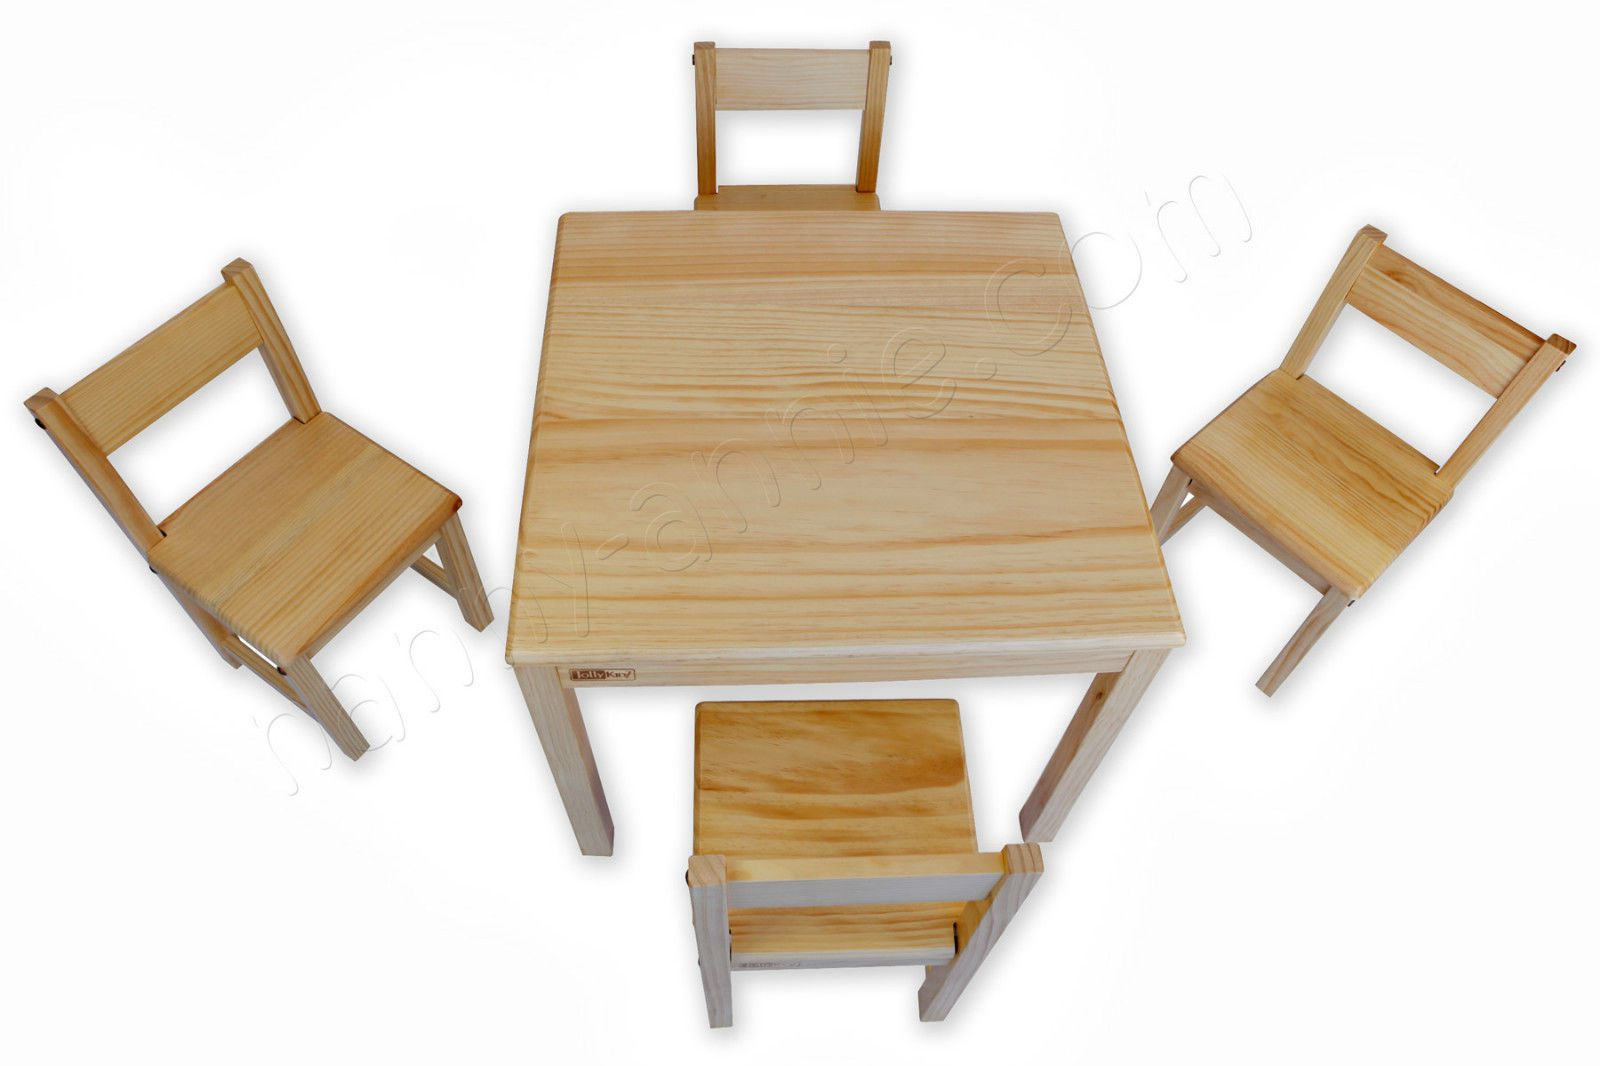 Kids Wooden Table And Chairs Jolly Kidz Children 39s Wooden Table And Four Chairs Kids